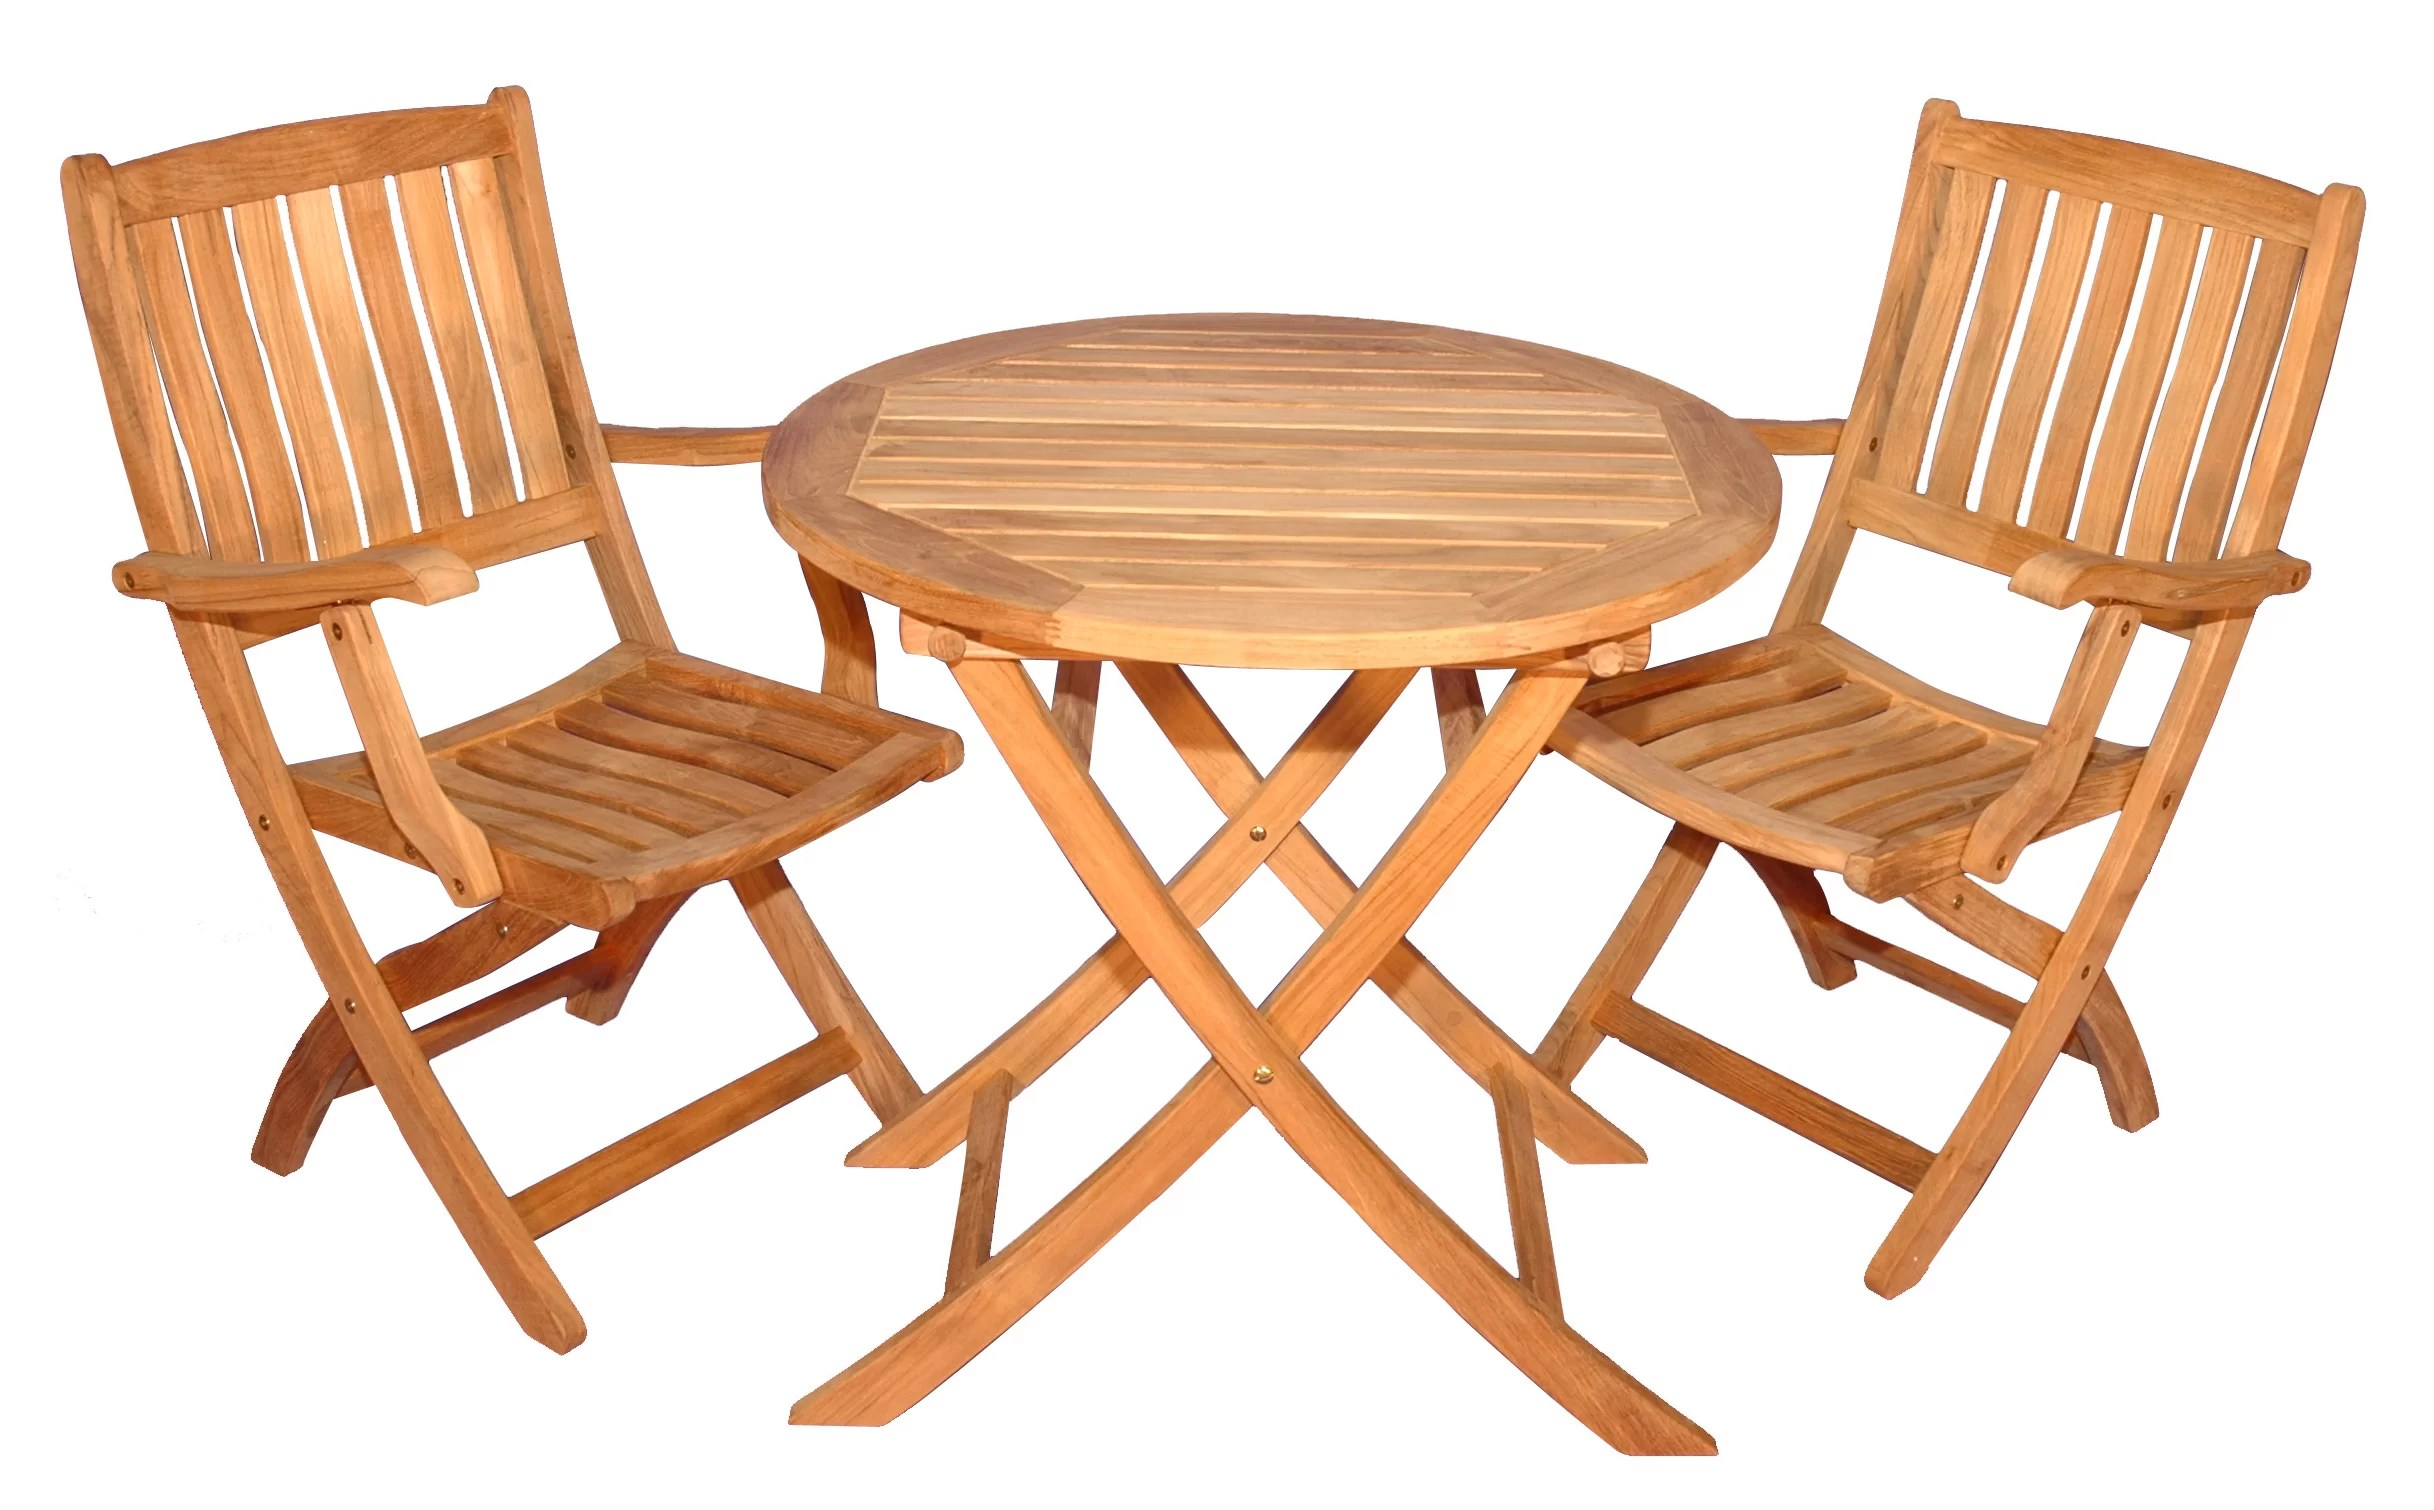 How To Clean And Care For Teak Furniture Wayfair Co Uk